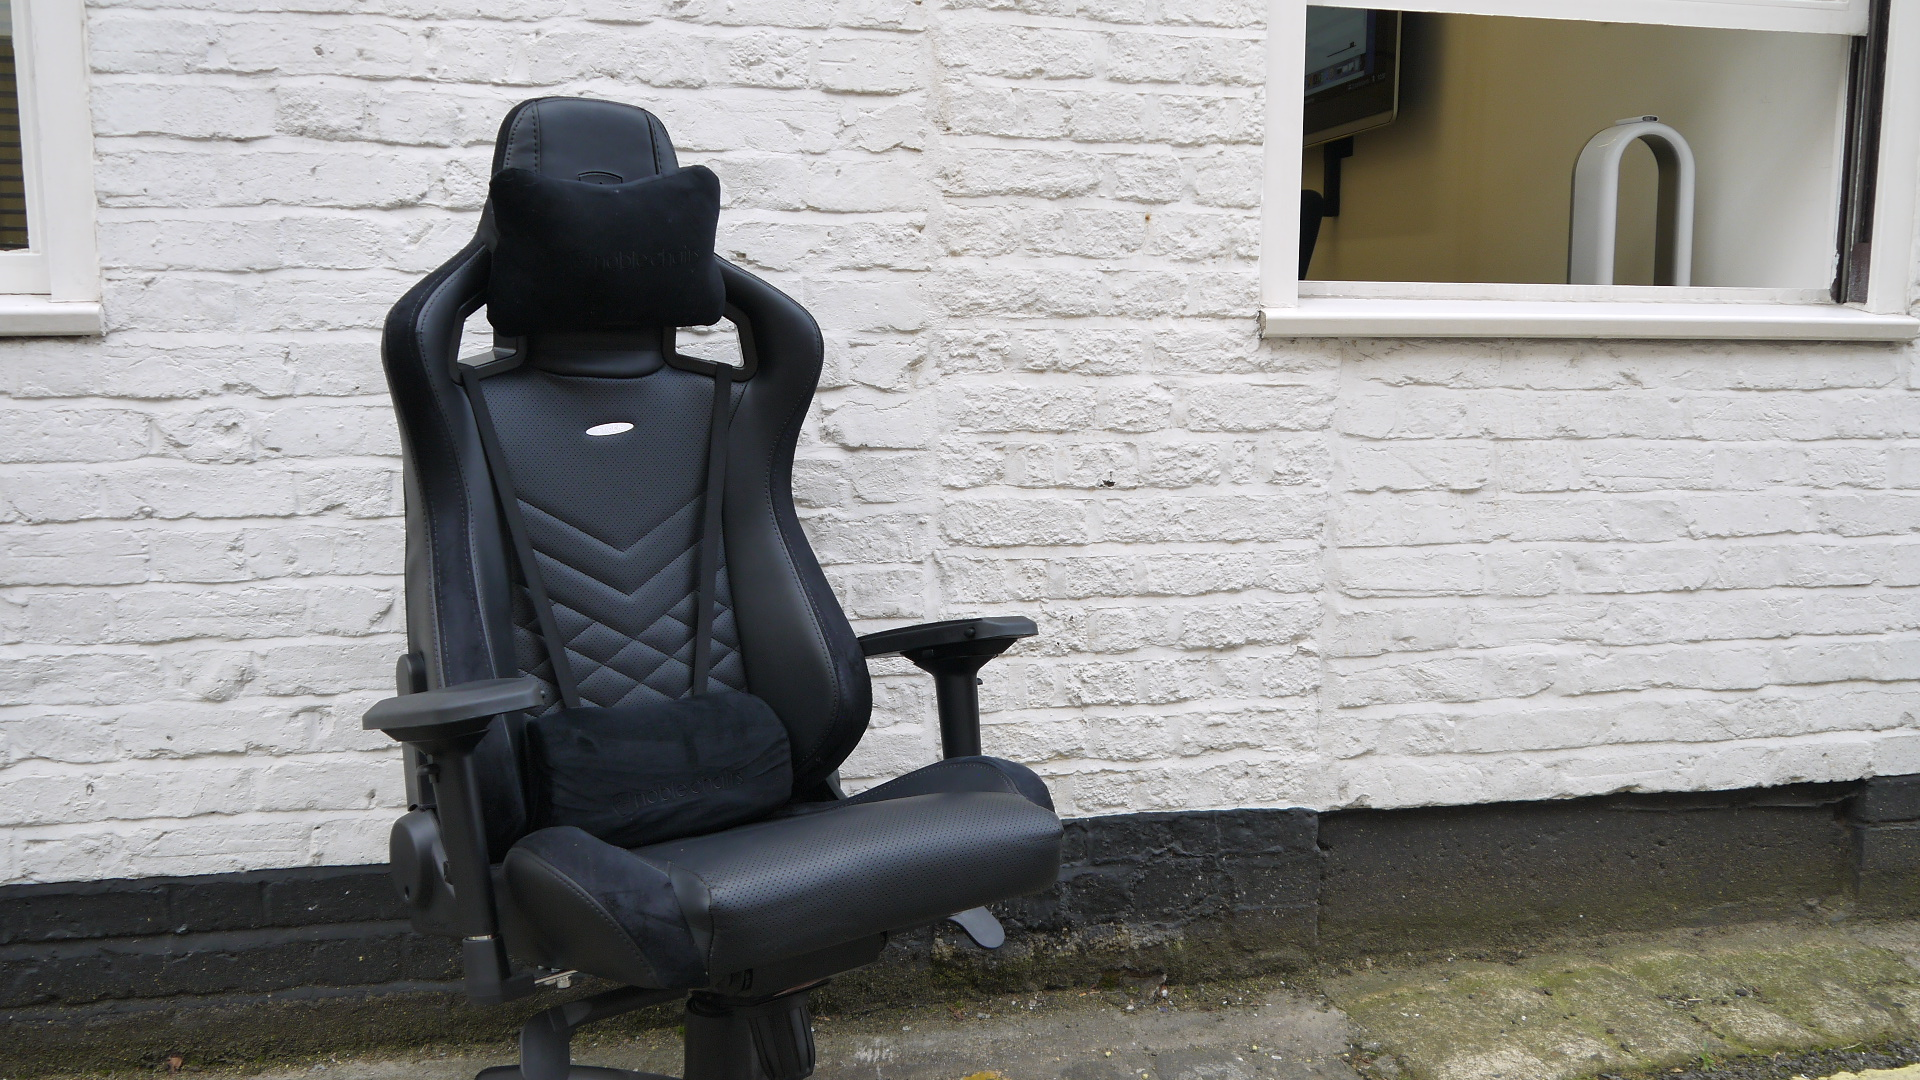 best chairs for pc gaming director chair covers ebay australia 5 to game in comfort